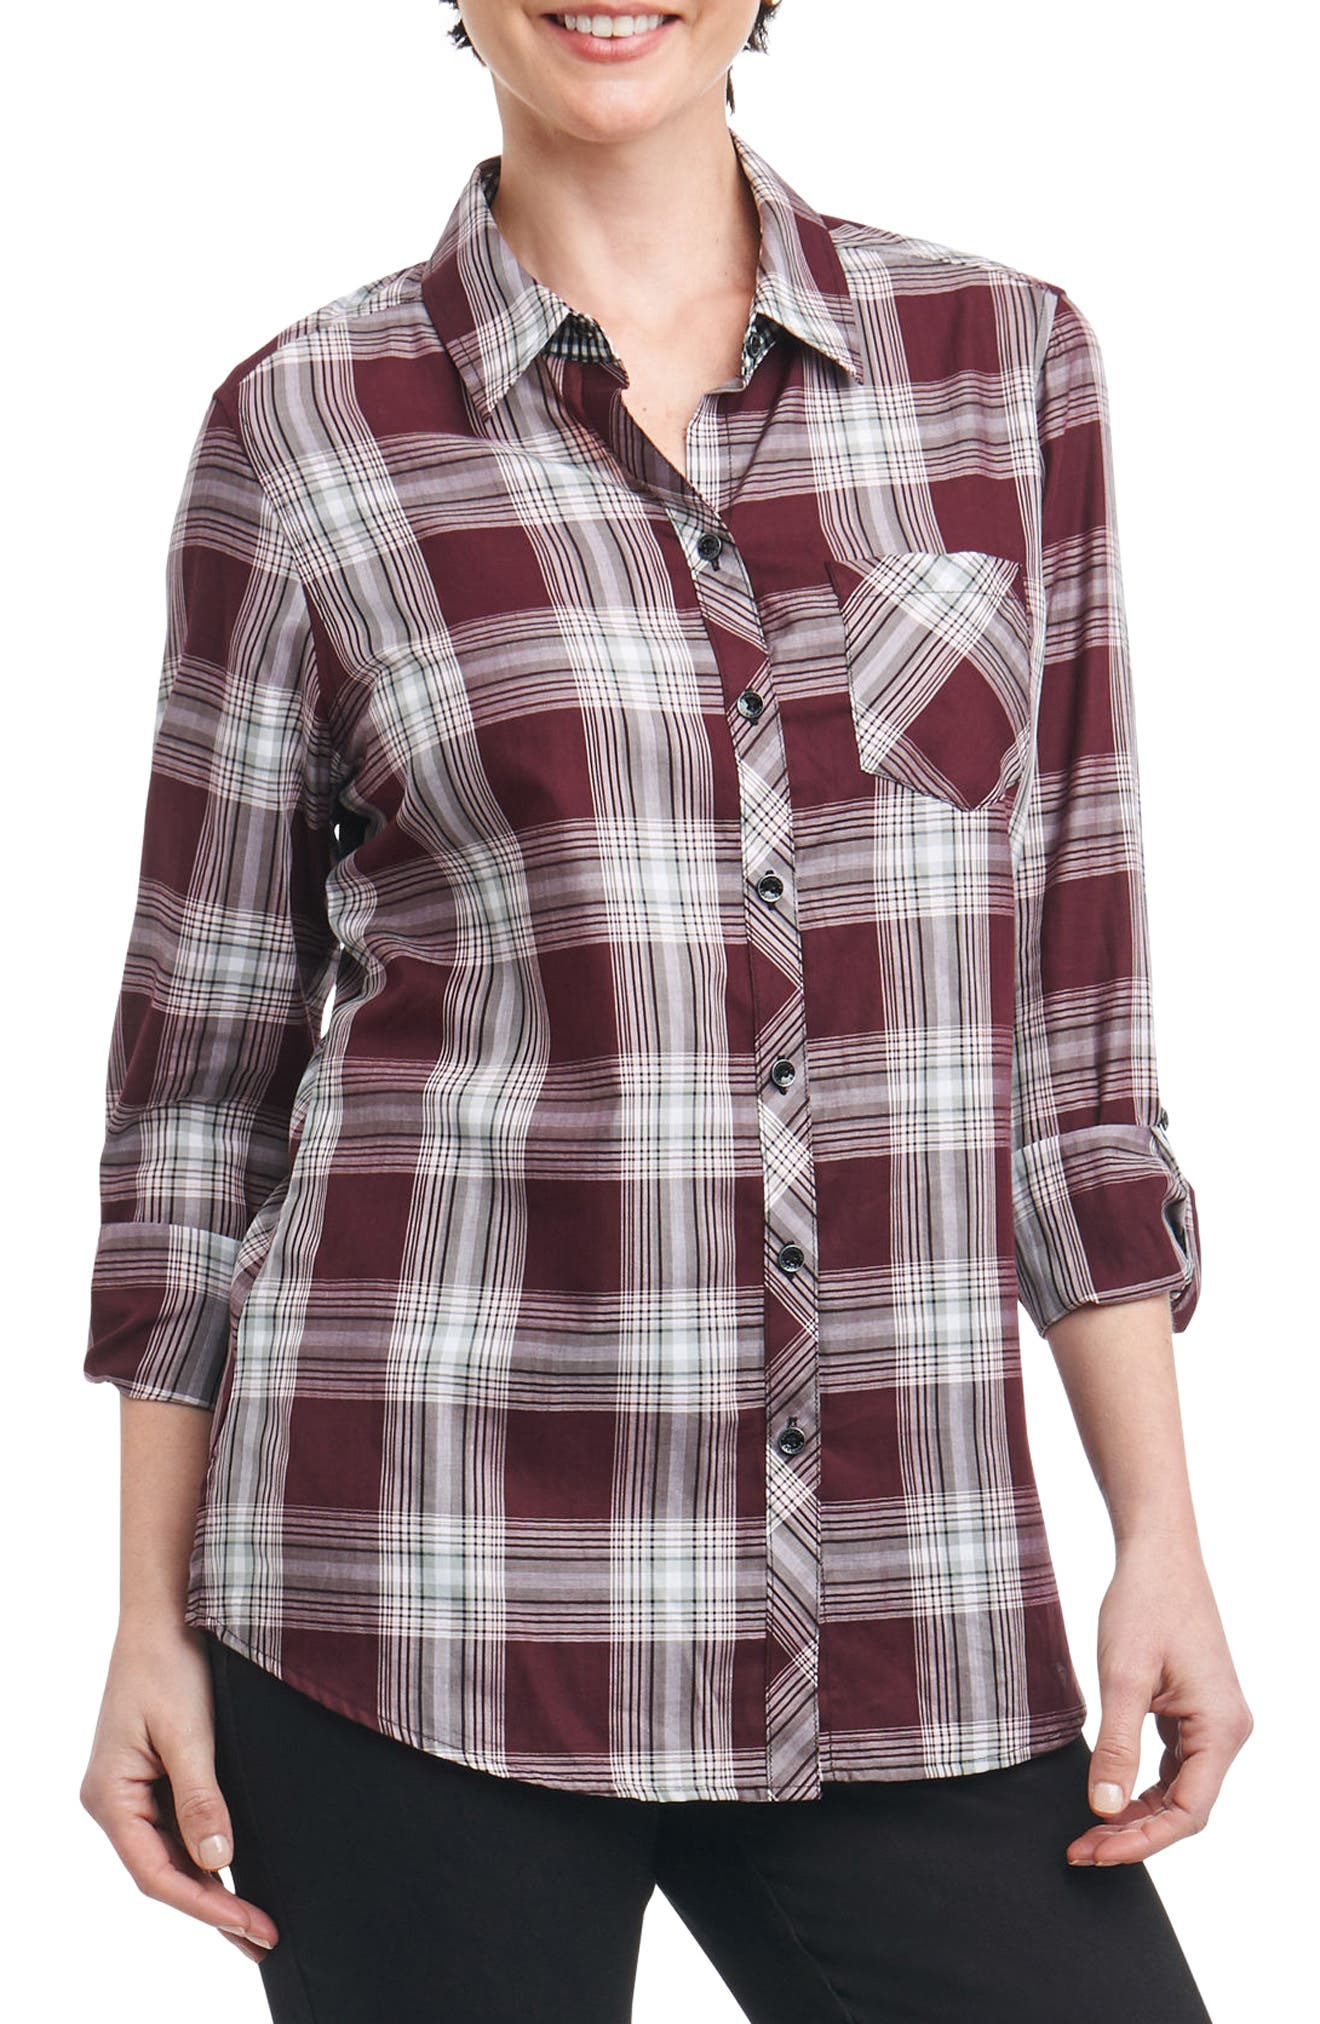 Addison Plaid Shirt,                         Main,                         color, Multi Plaid